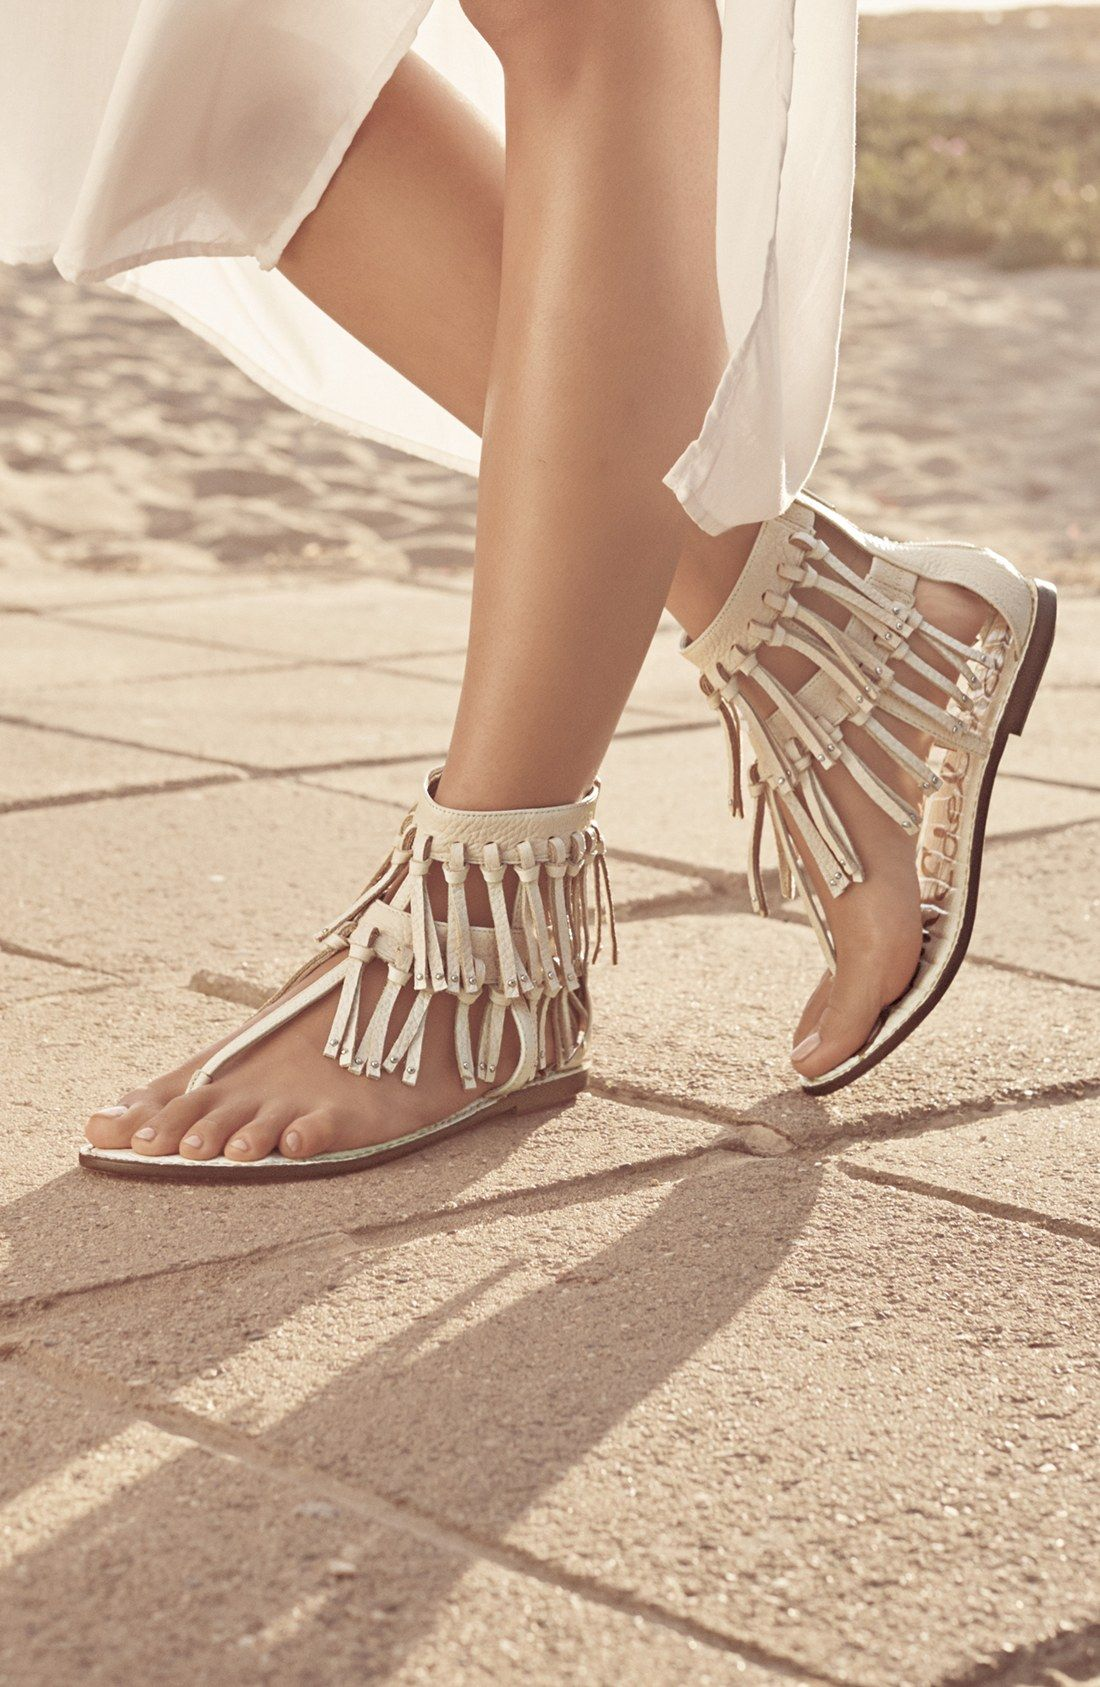 On Trend Boho Chic Sandals With Fringe For A Cool And